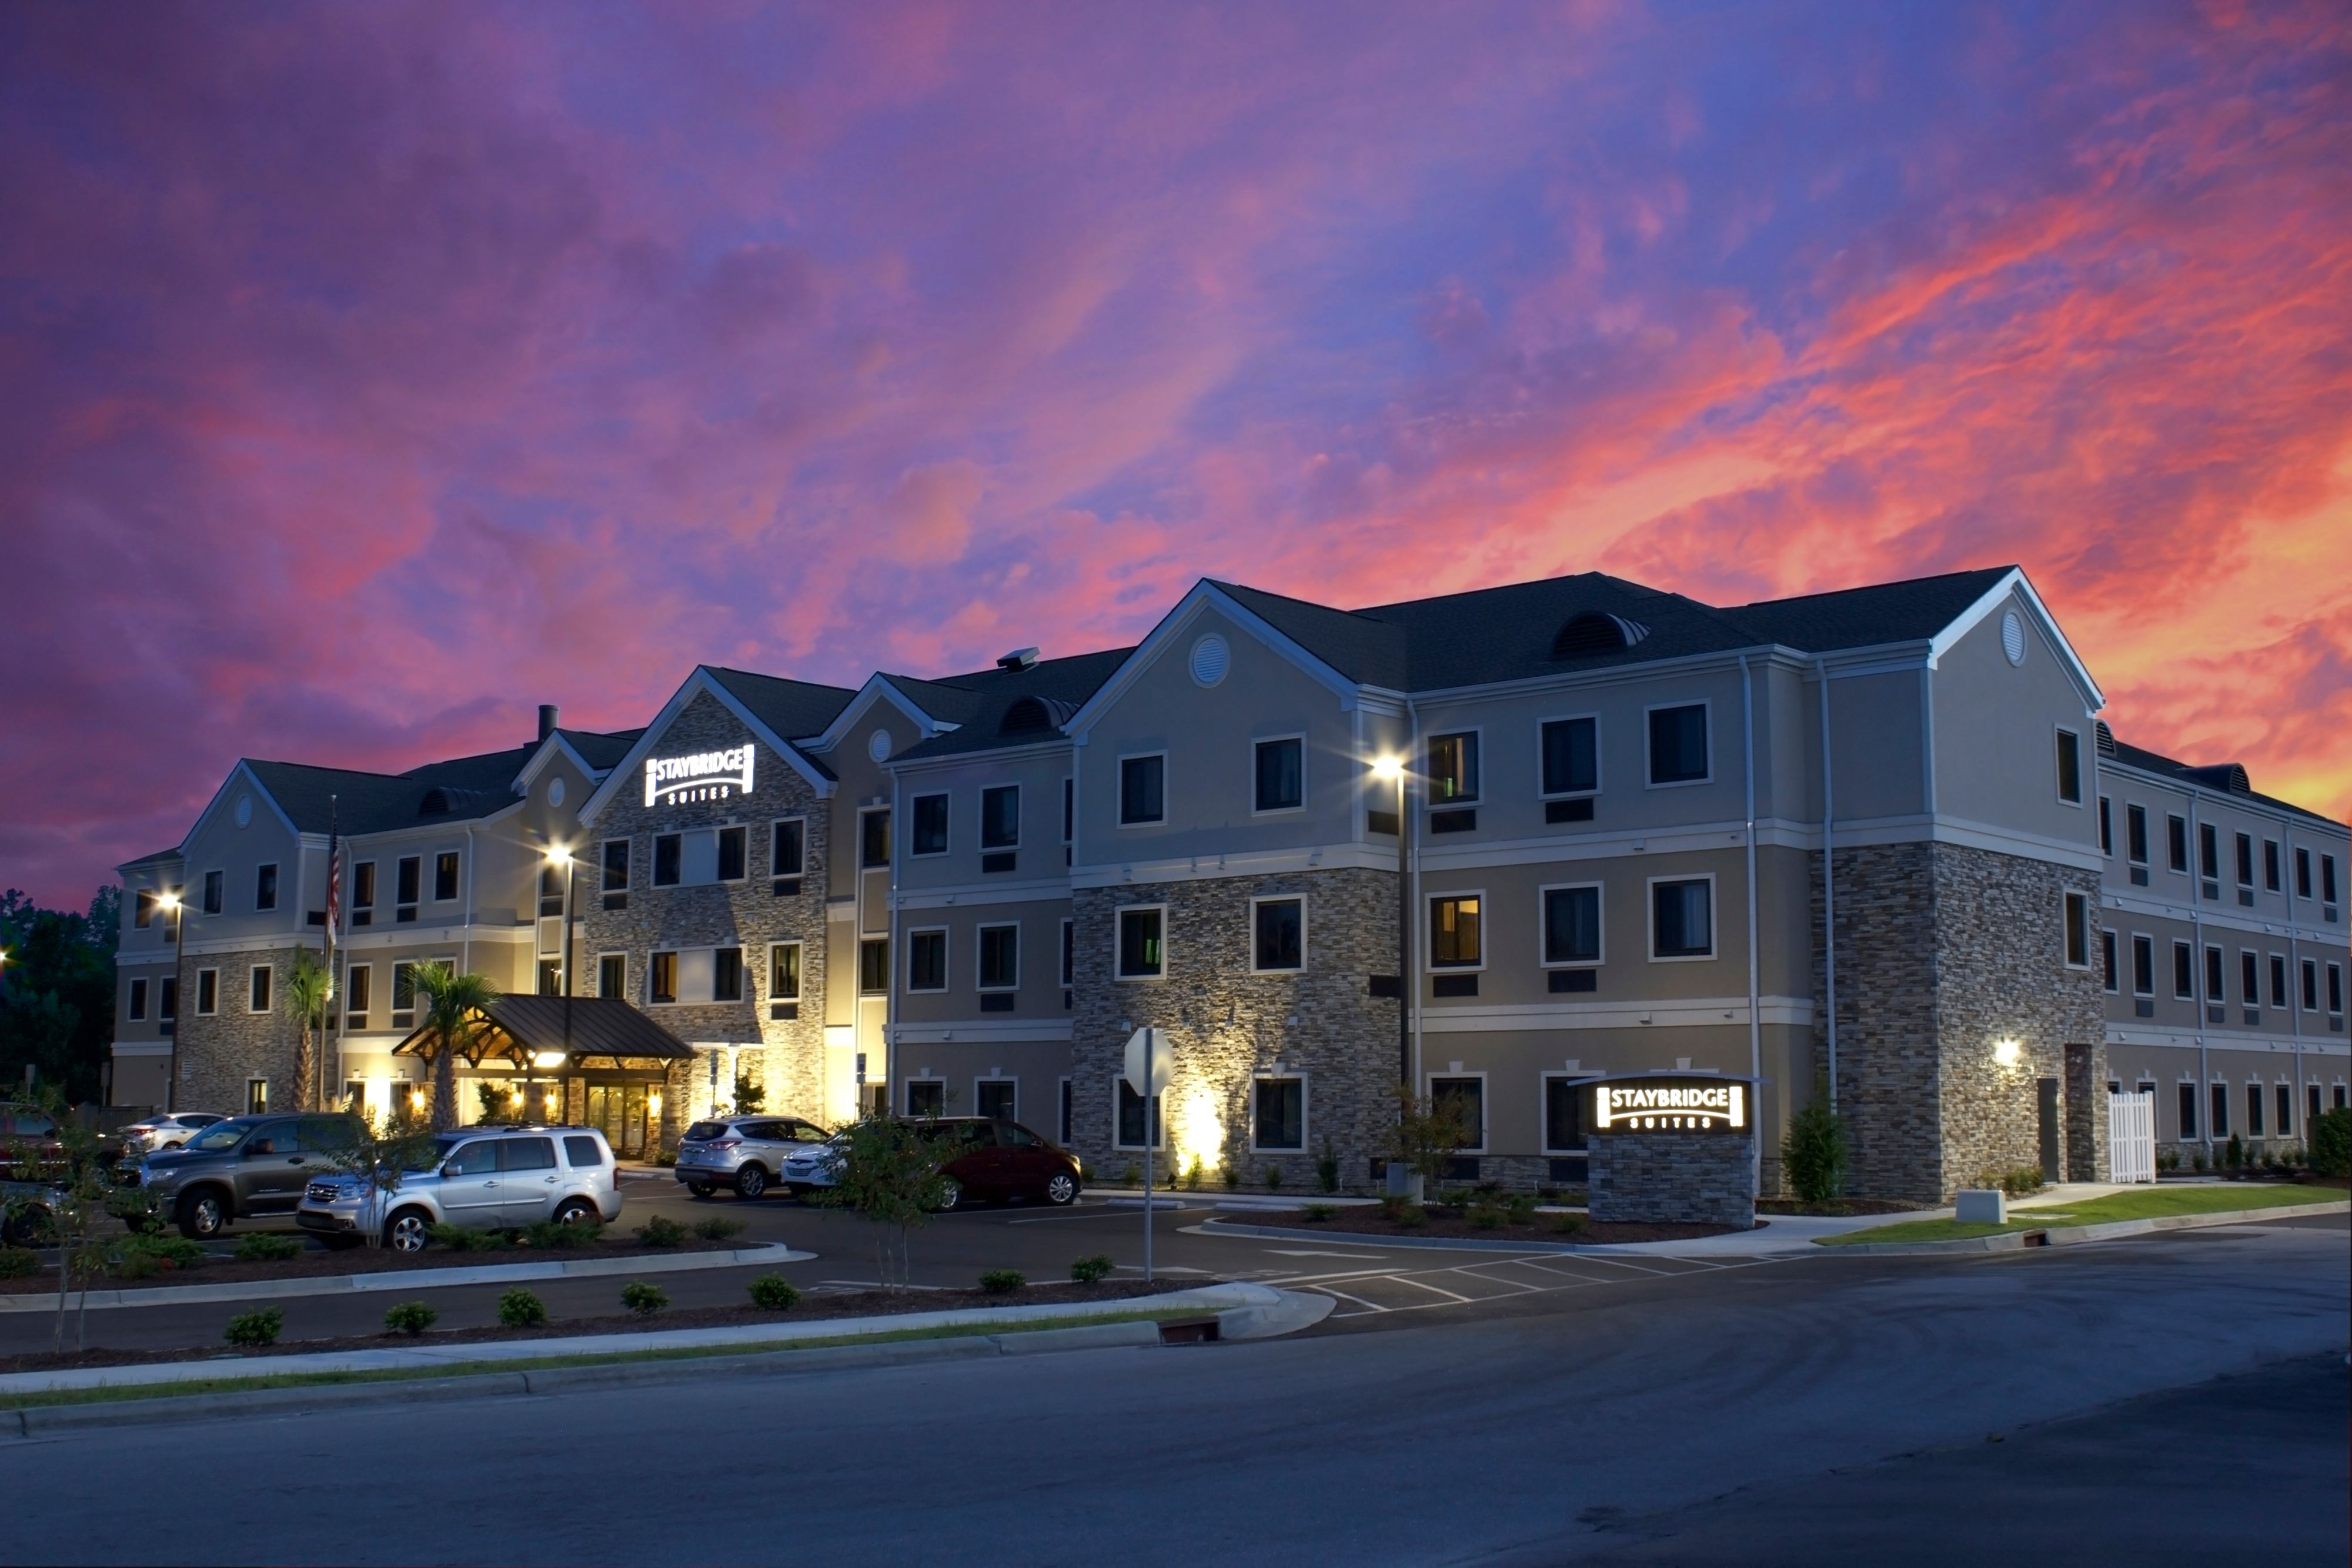 Hotels in Jacksonville NC | TownePlace Suites Jacksonville